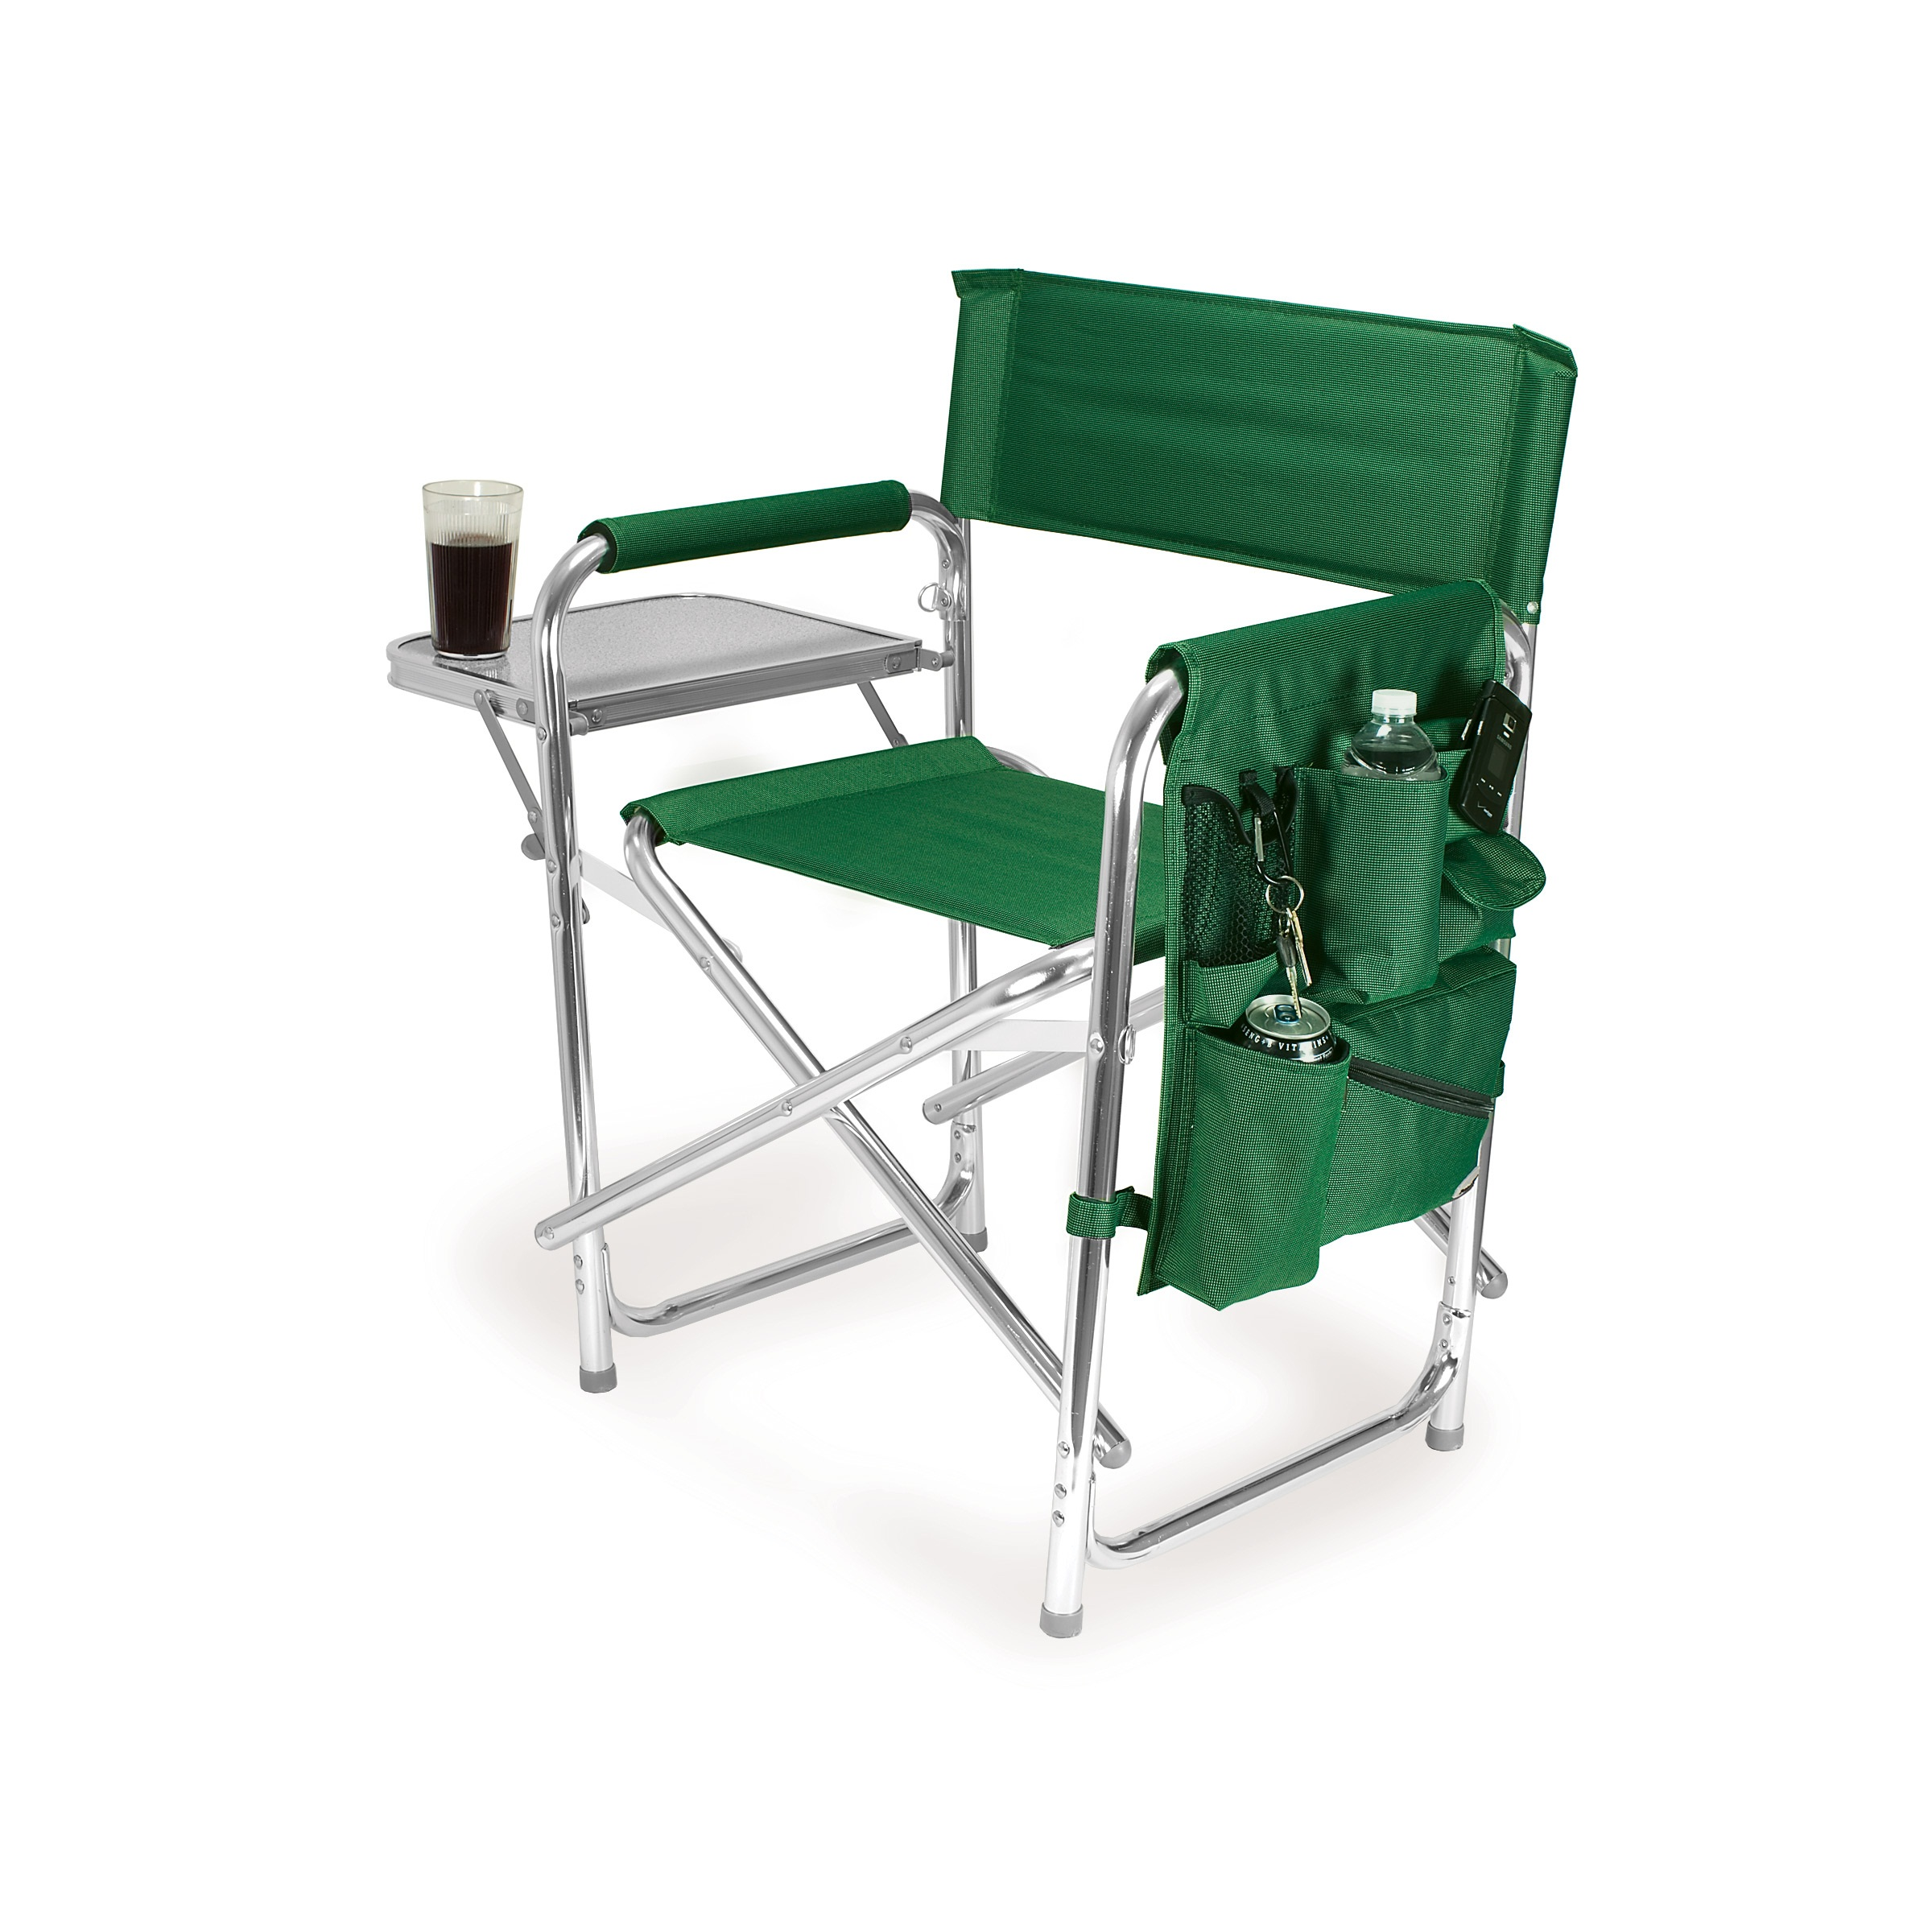 Picnic Time Green Portable Folding Sports Camping Chair